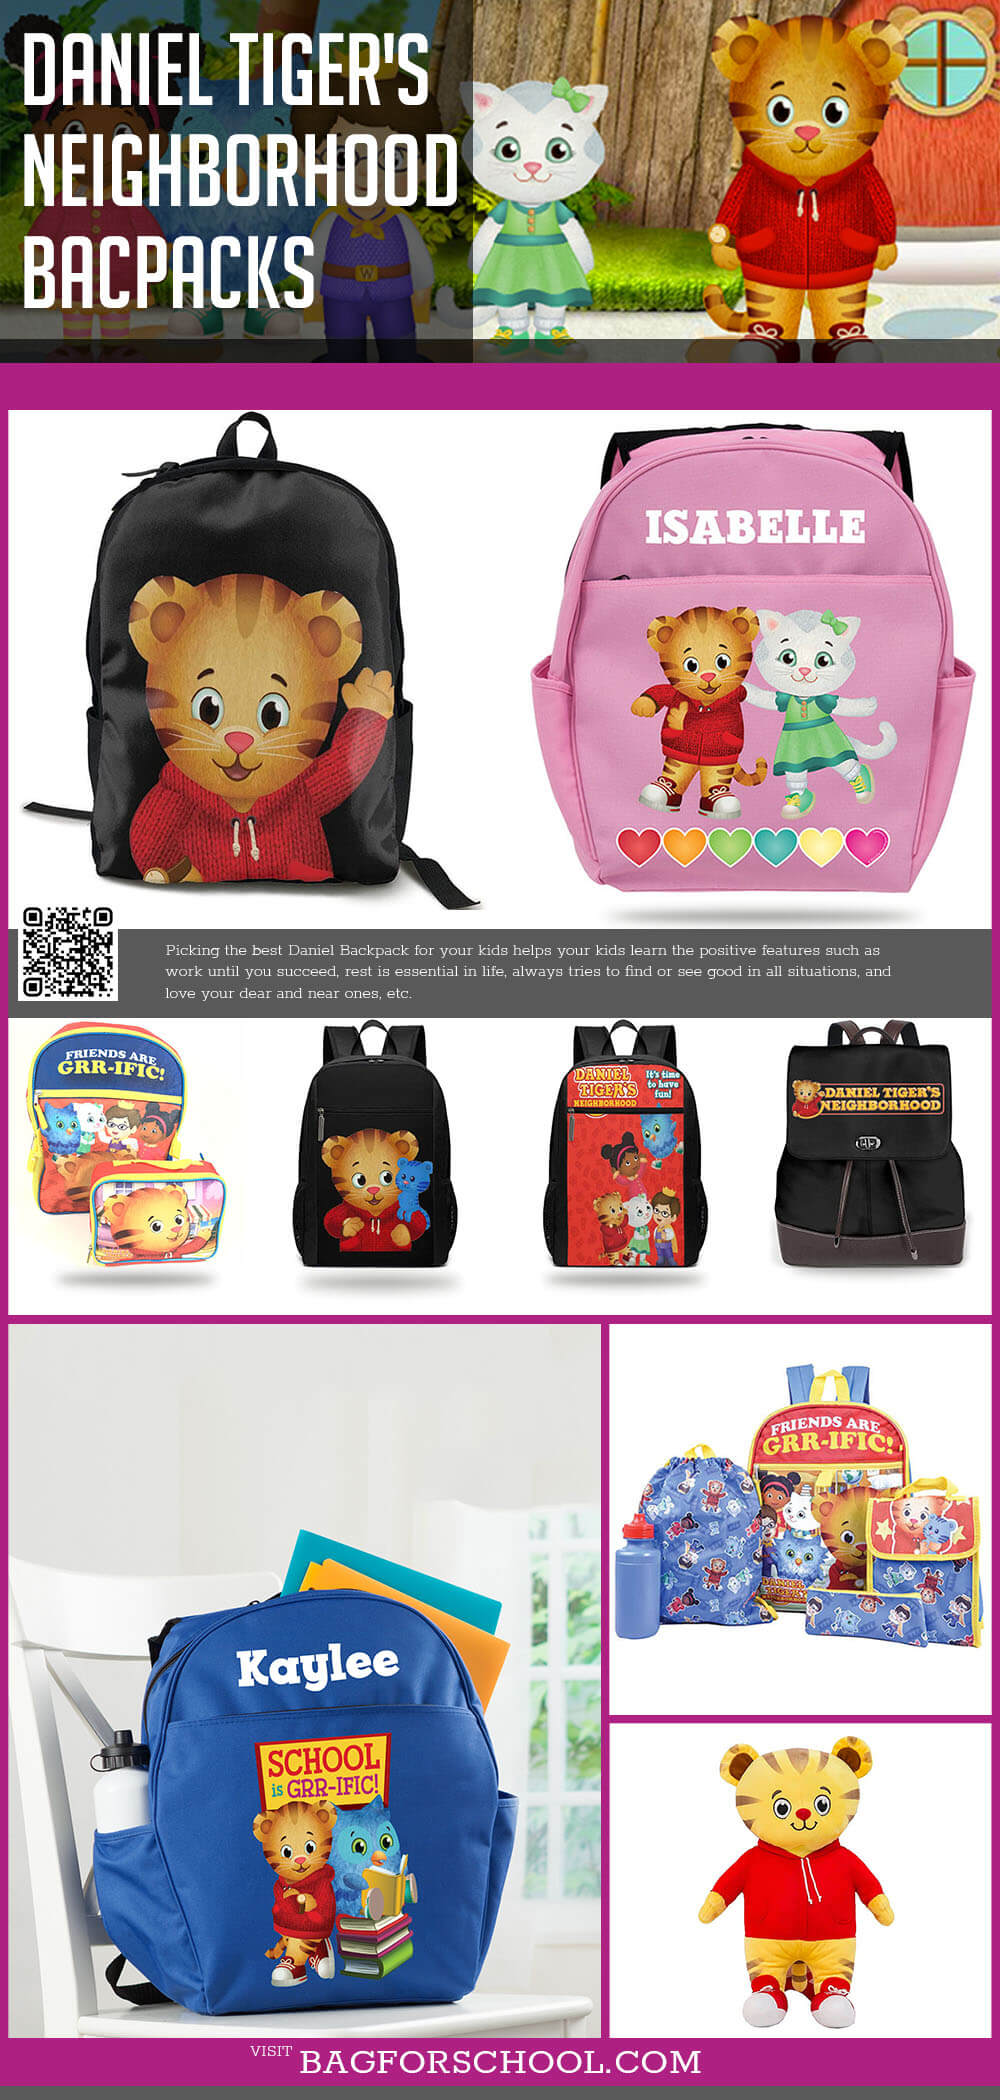 Daniel Tiger's Neighborhood Backpacks